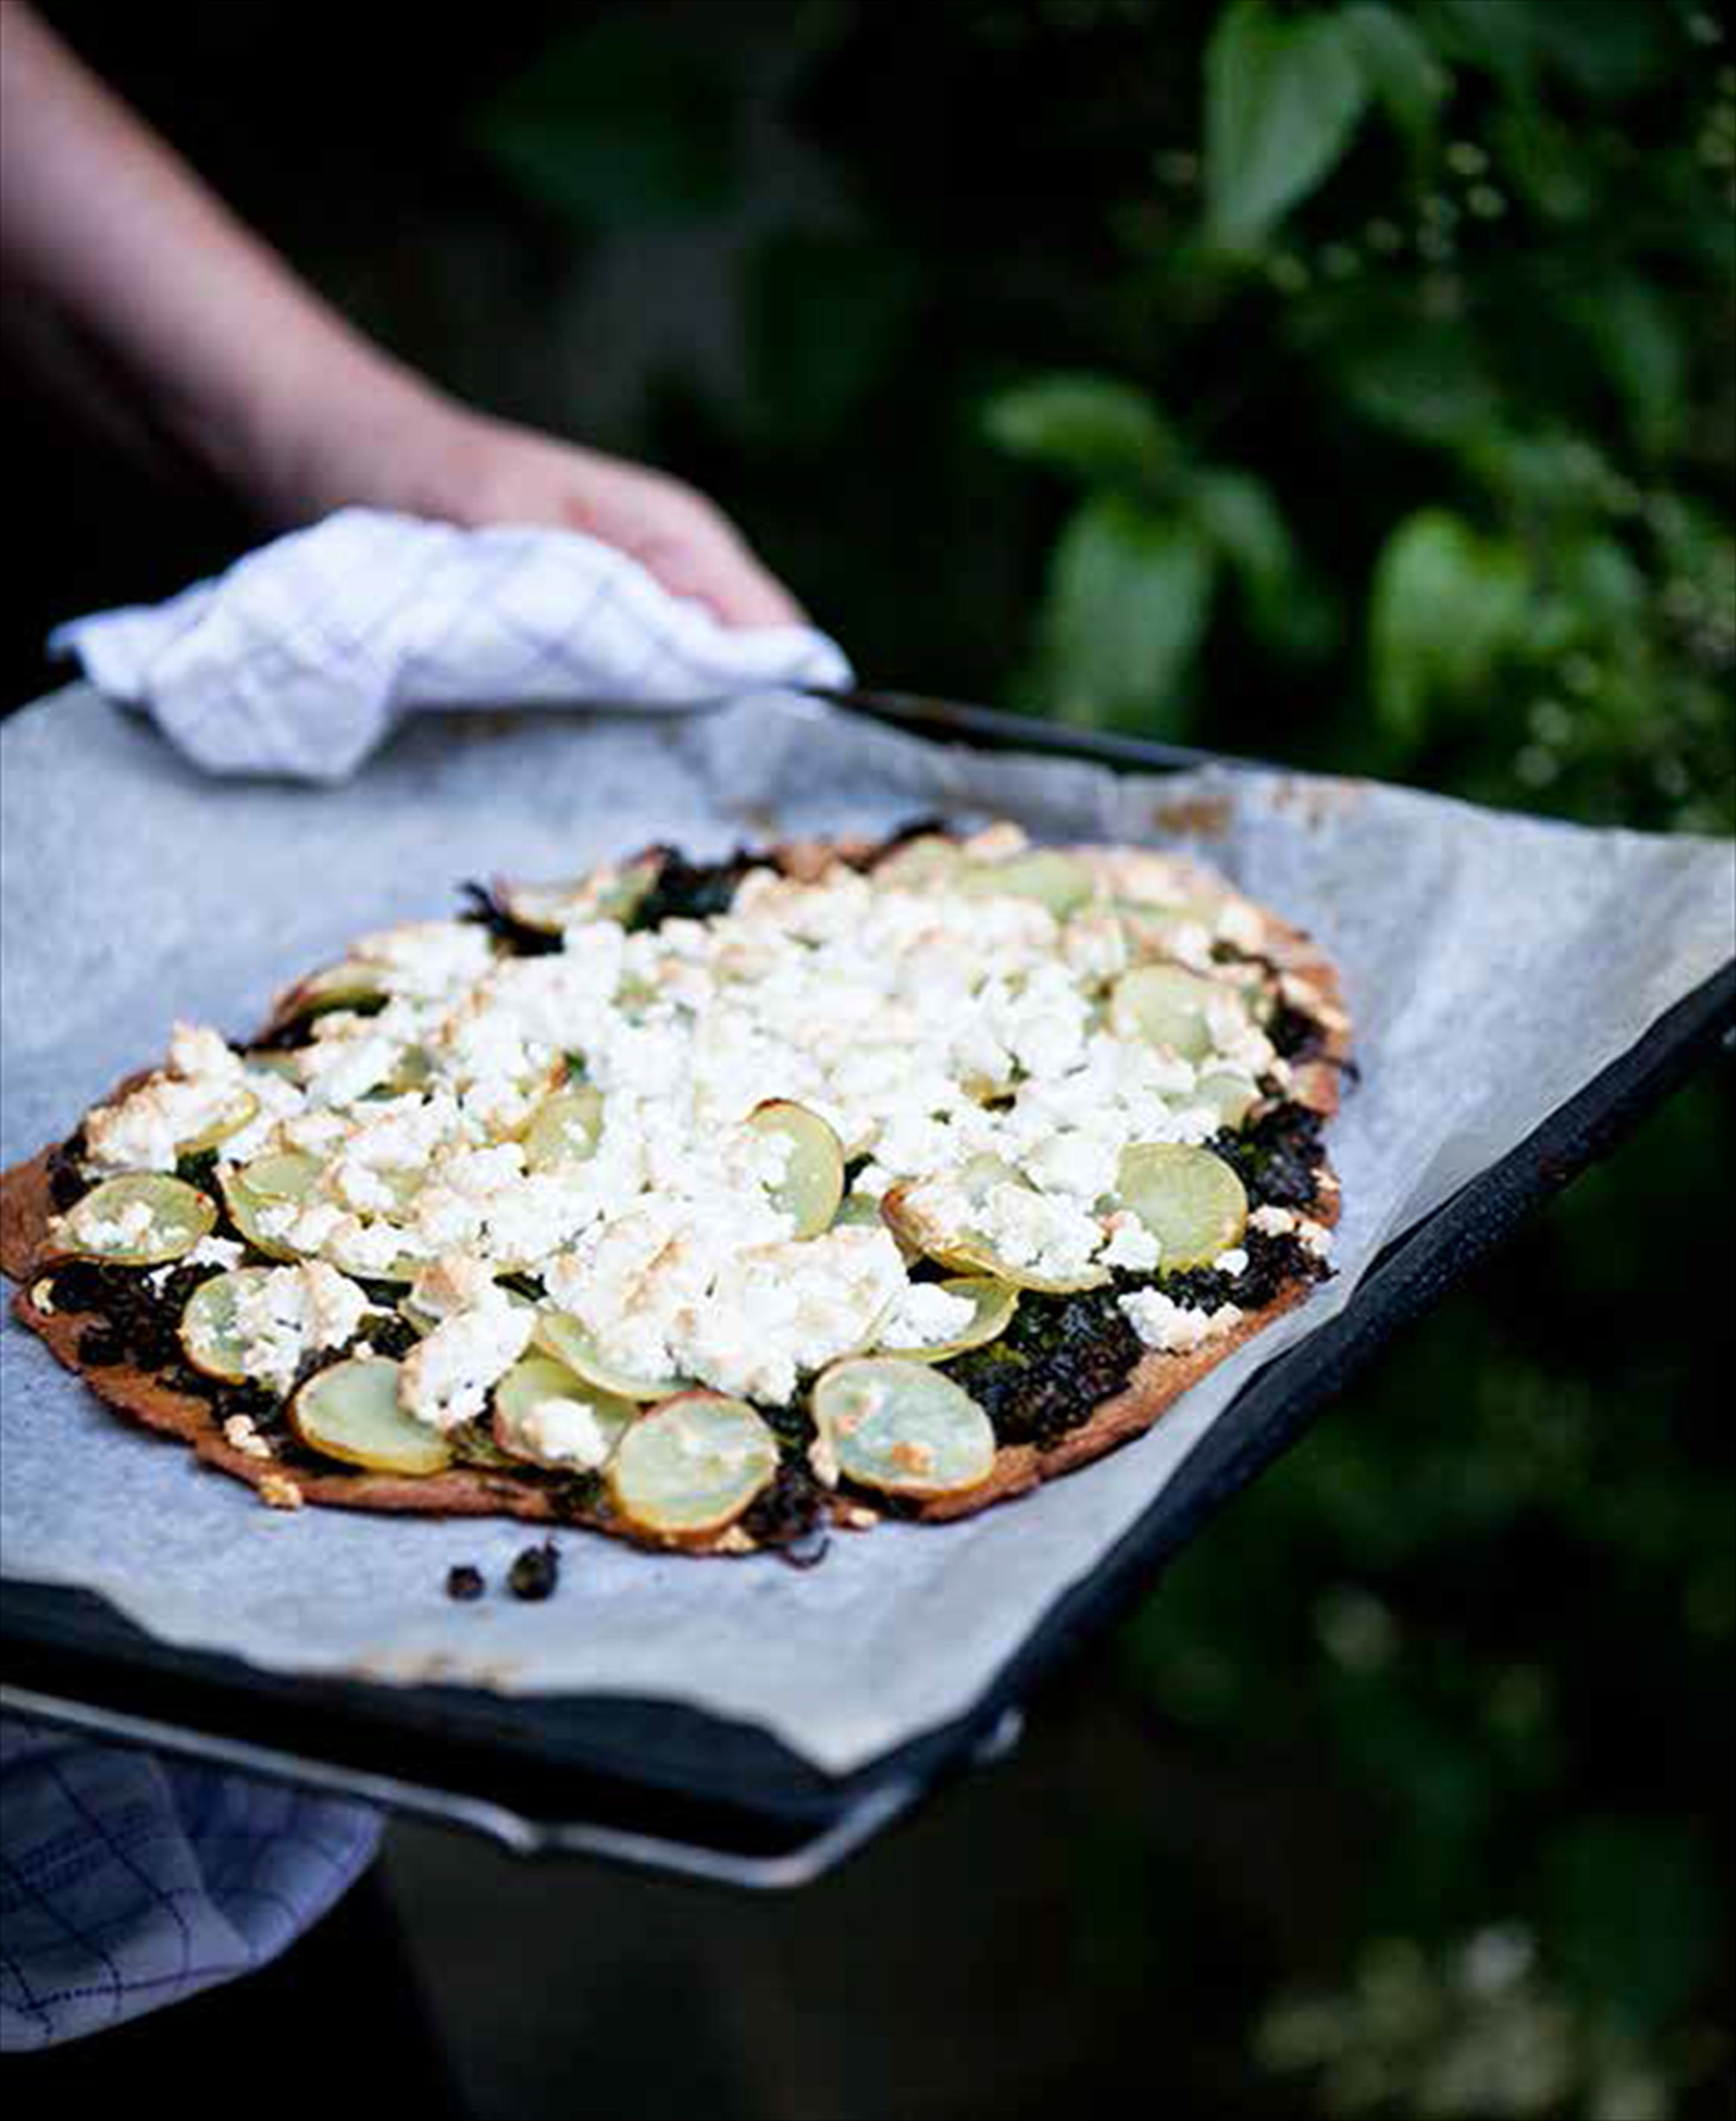 Nordic 'pizza' with kale and potato